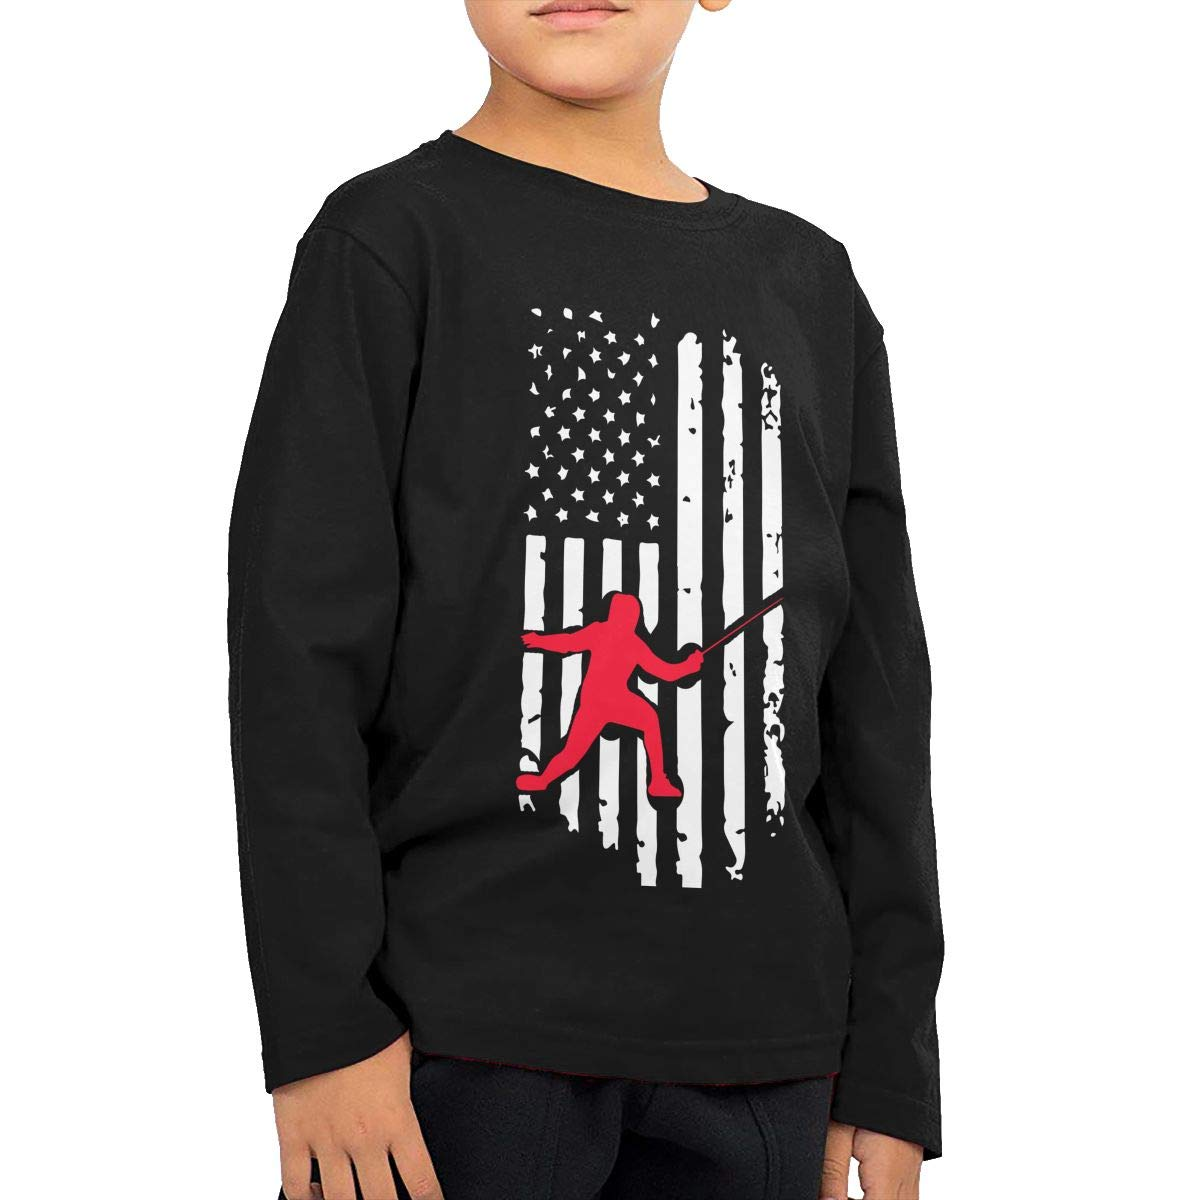 Fryhyu8 Baby Boys Kids Fencing American Flag-1 Printed Long Sleeve 100/% Cotton Infants T-Shirts